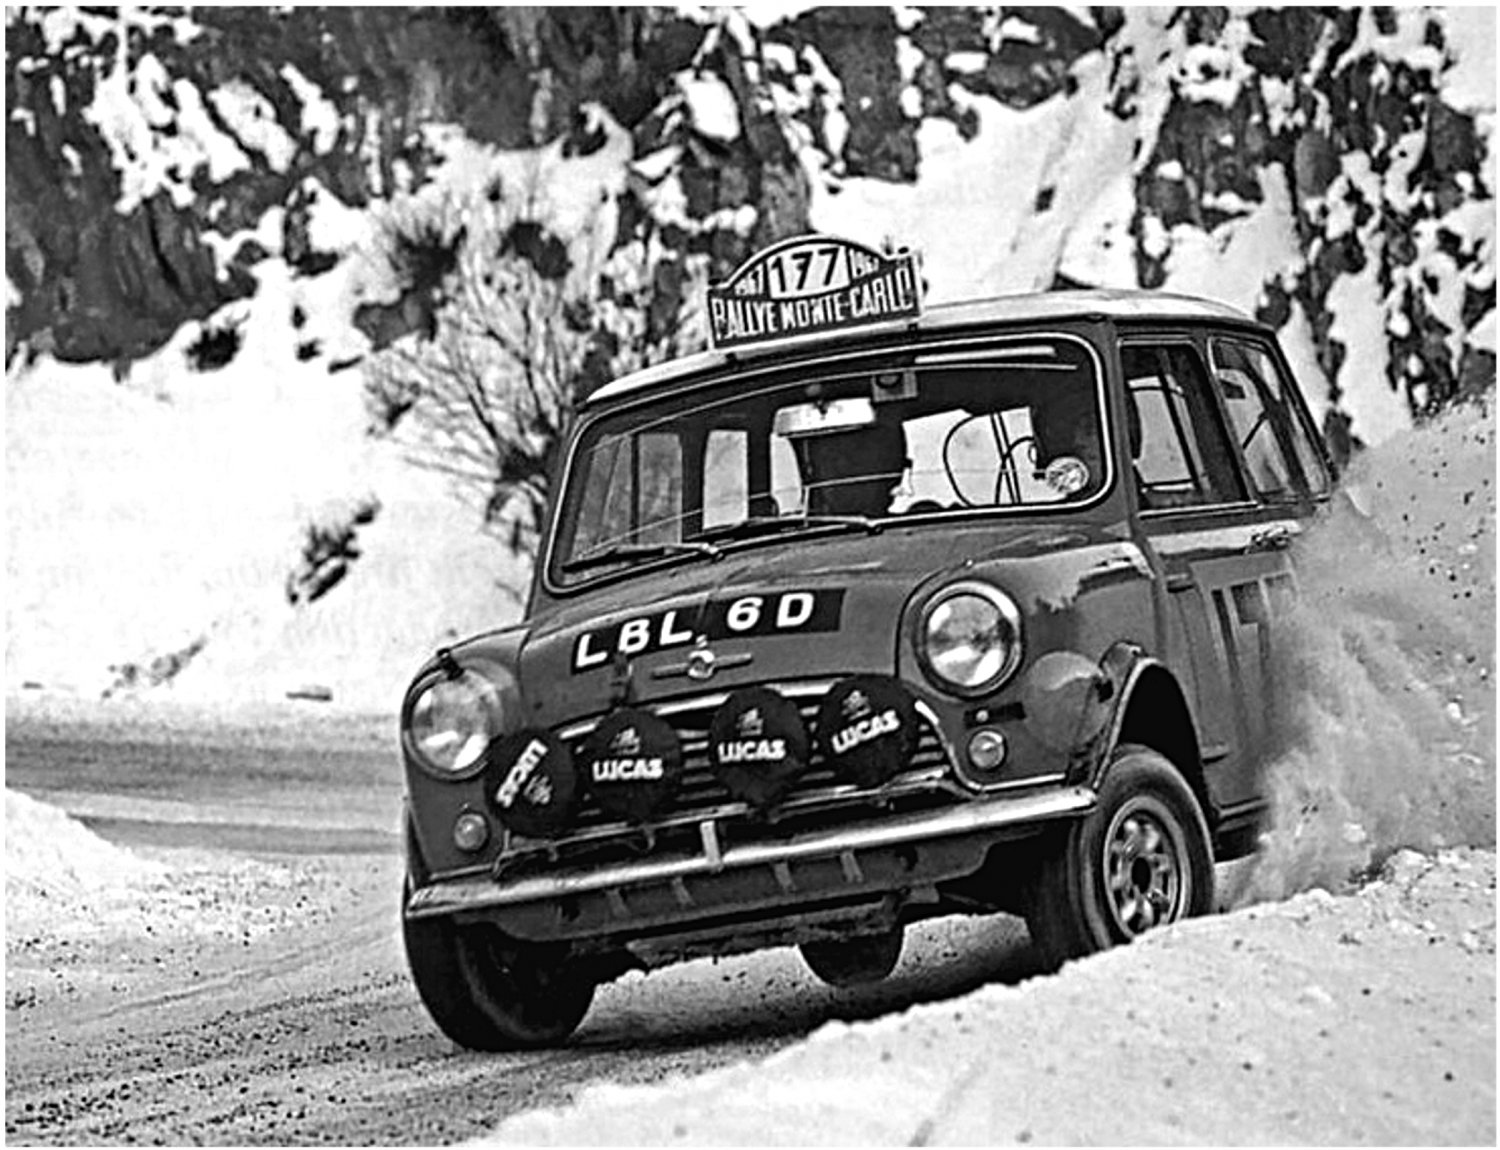 Aaltonen-Liddon Mini Cooper S 1967 Monte-Carlo Winners - Rally Car Photo Print